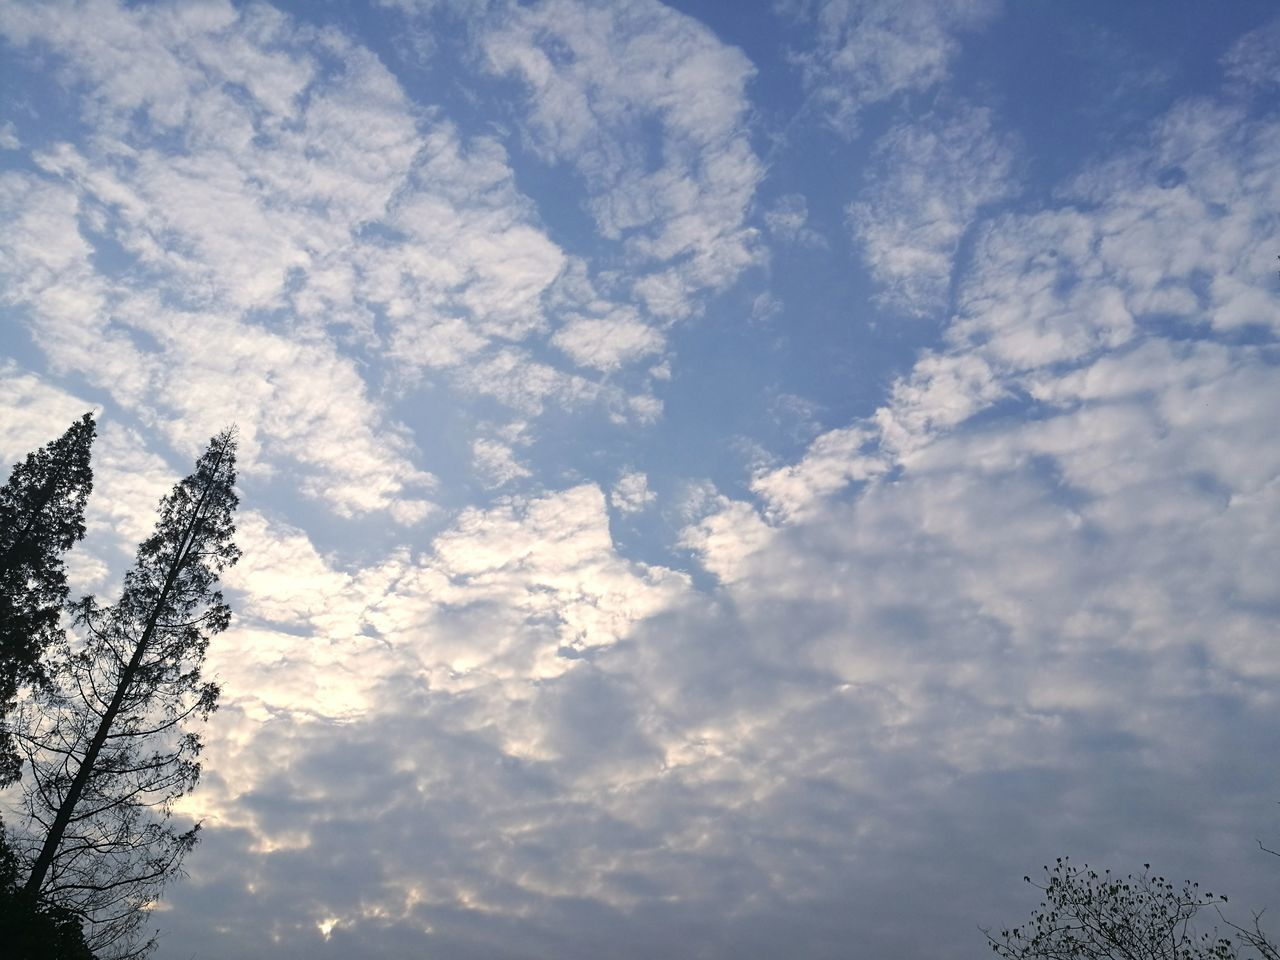 low angle view, sky, cloud - sky, nature, beauty in nature, no people, tranquility, day, outdoors, scenics, tree, growth